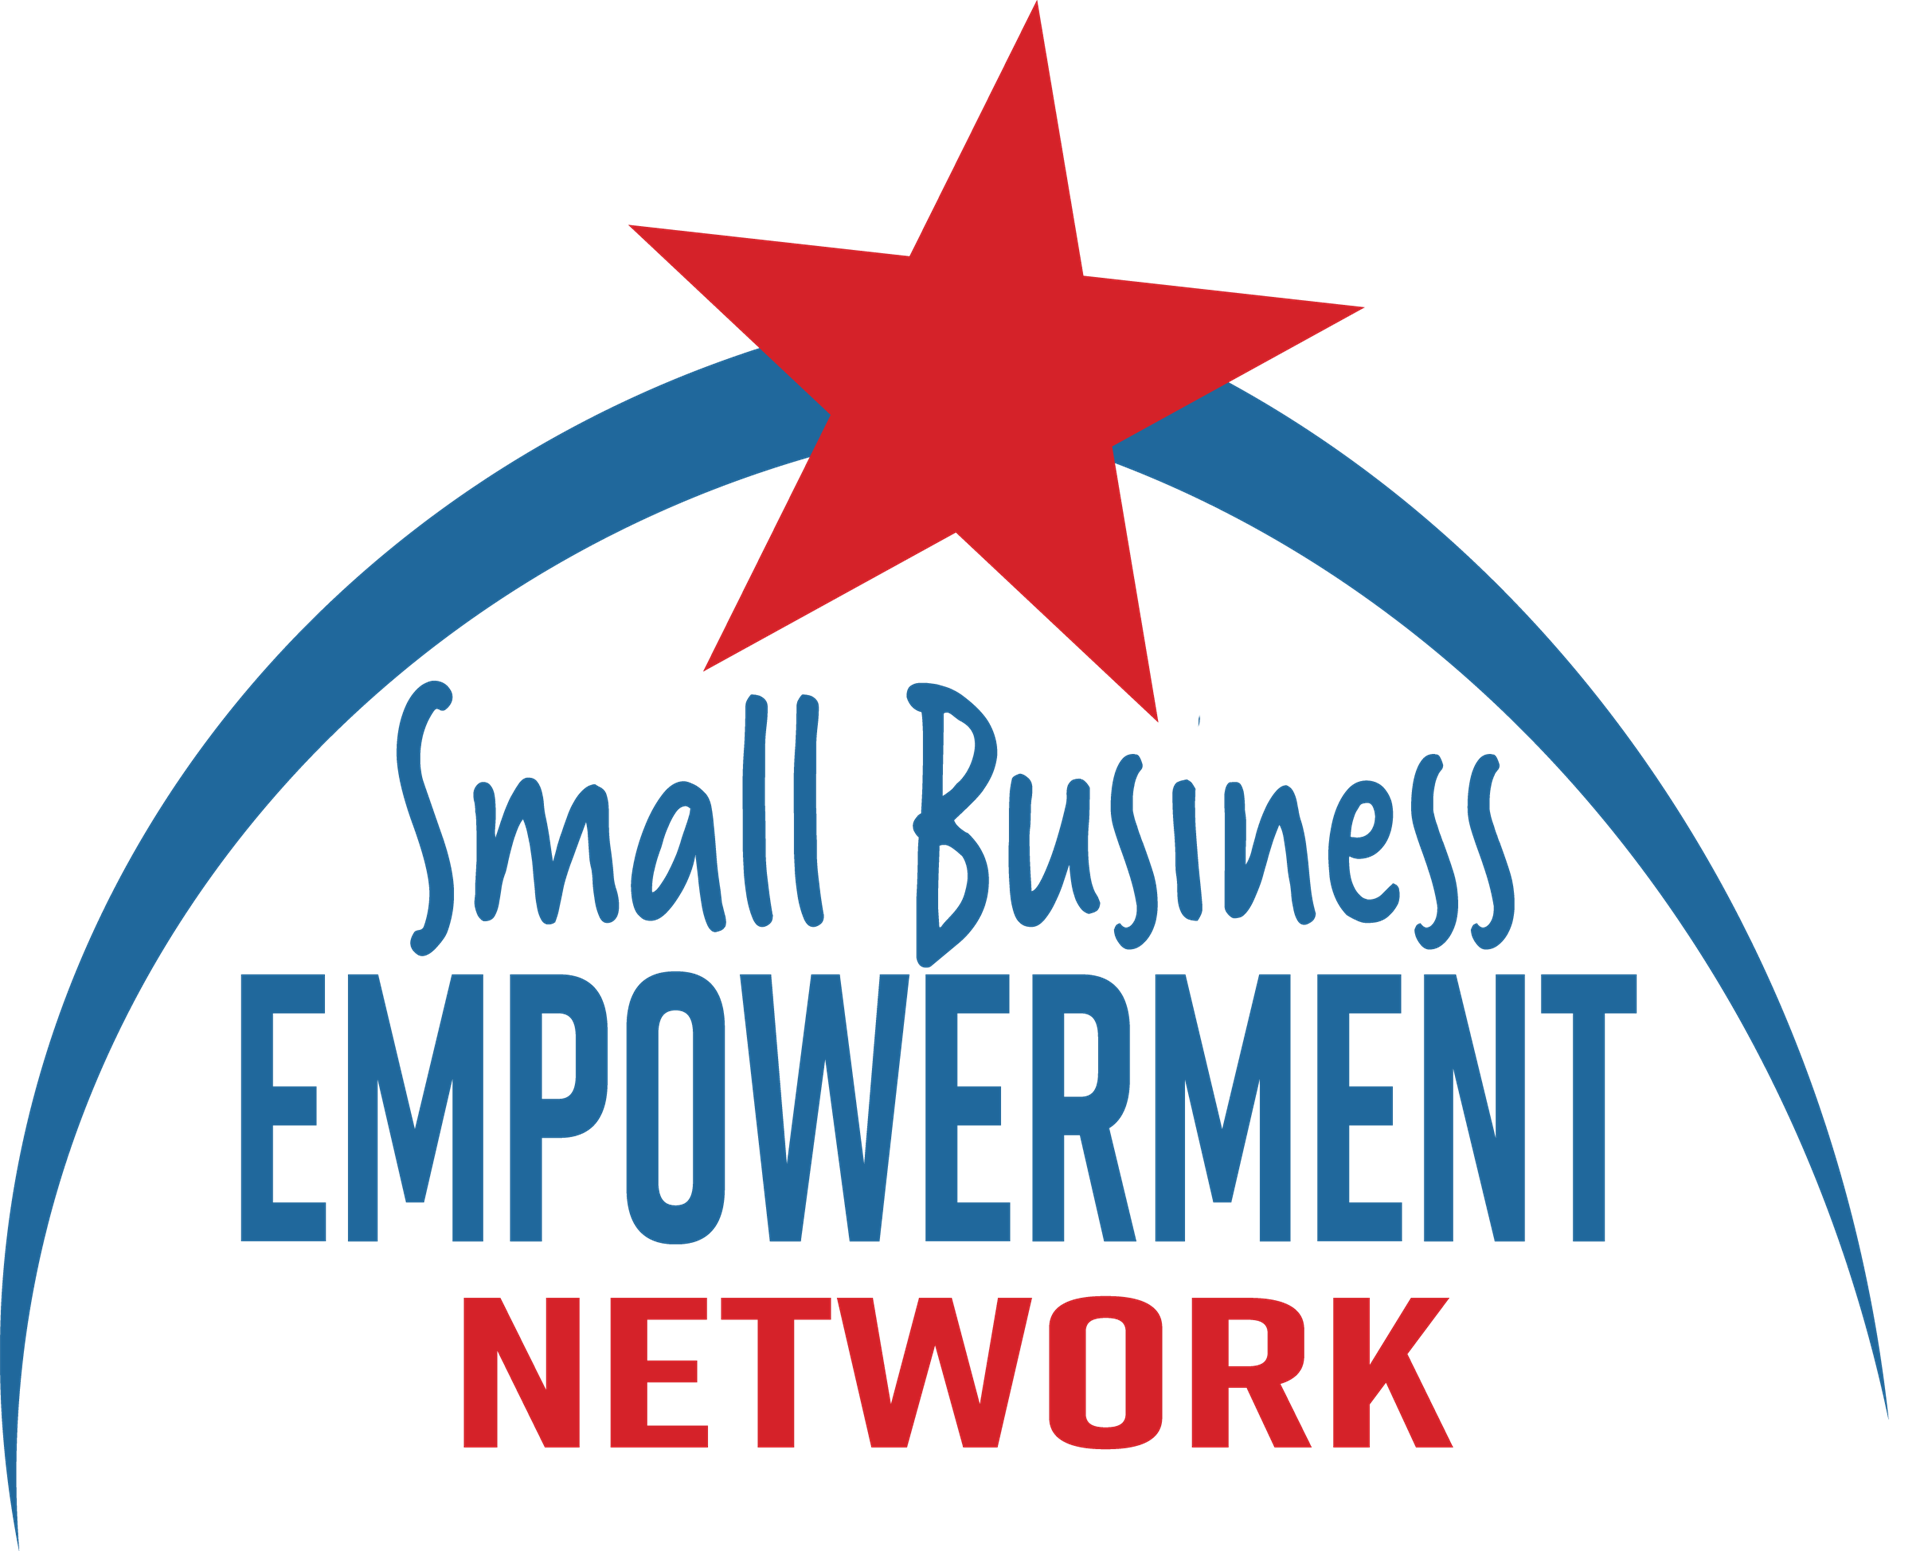 Small Business Empowerment Network in Fresno CA